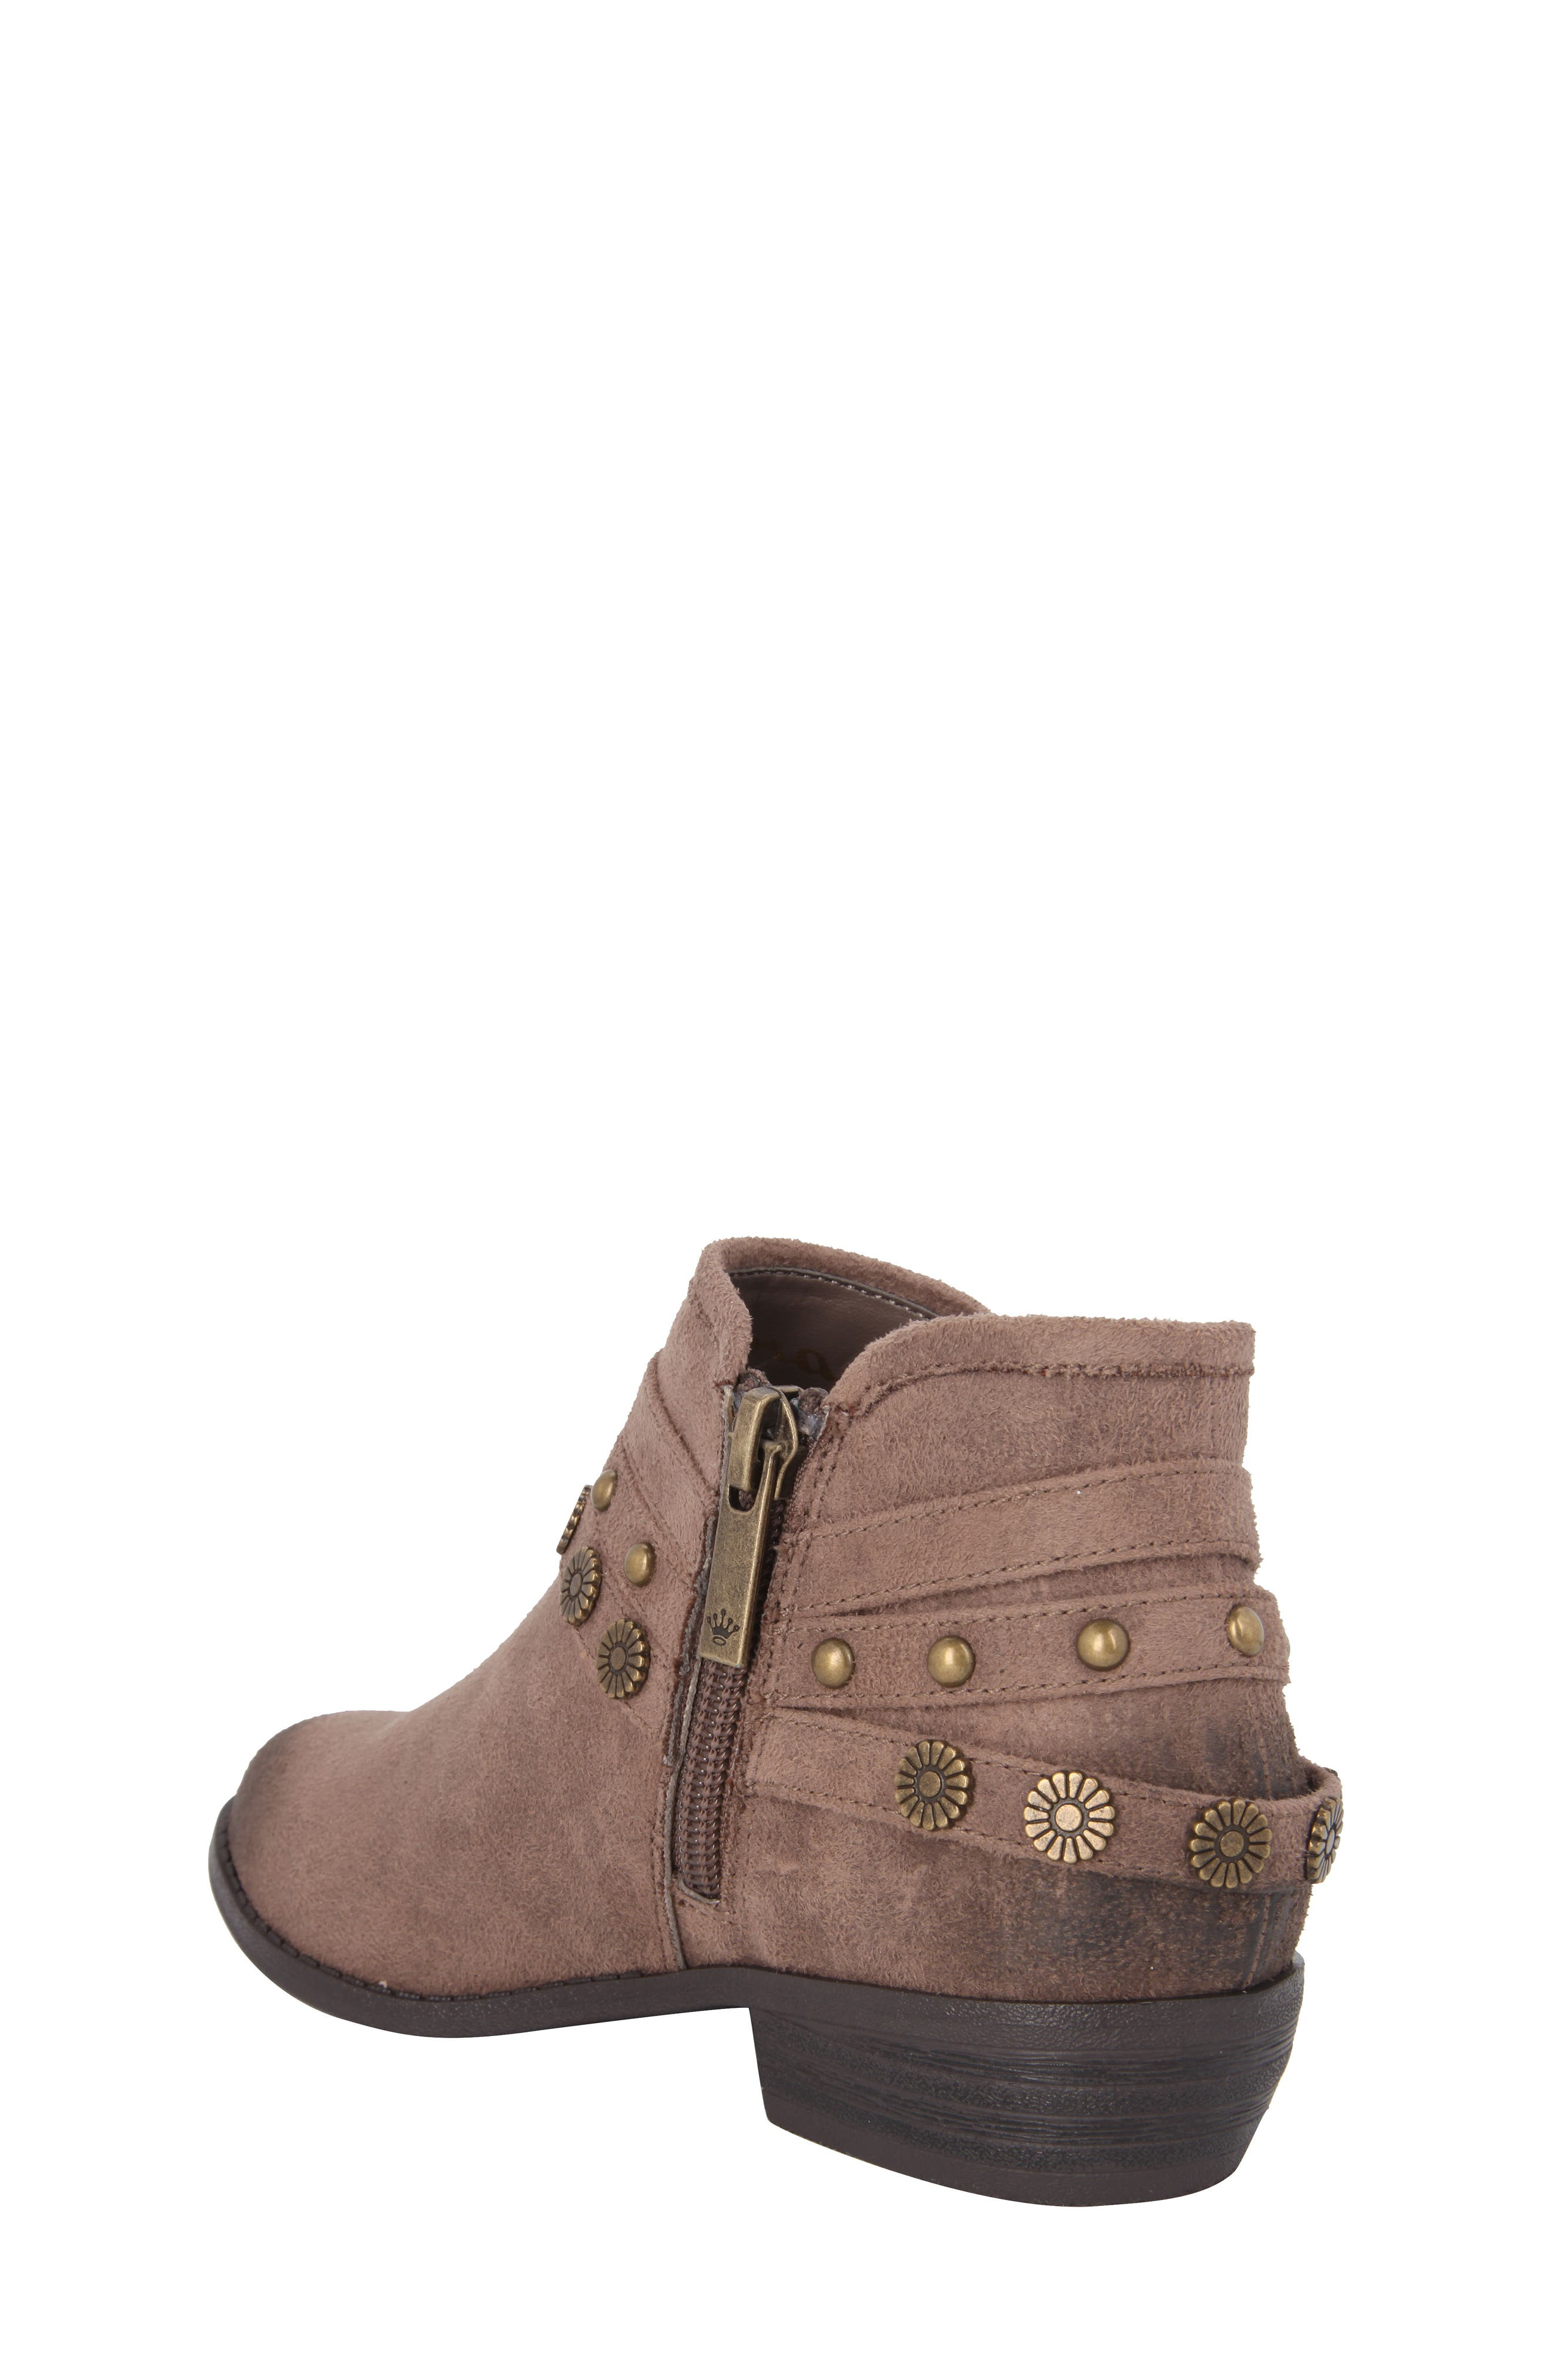 Zoe Strappy Low Bootie,                             Alternate thumbnail 4, color,